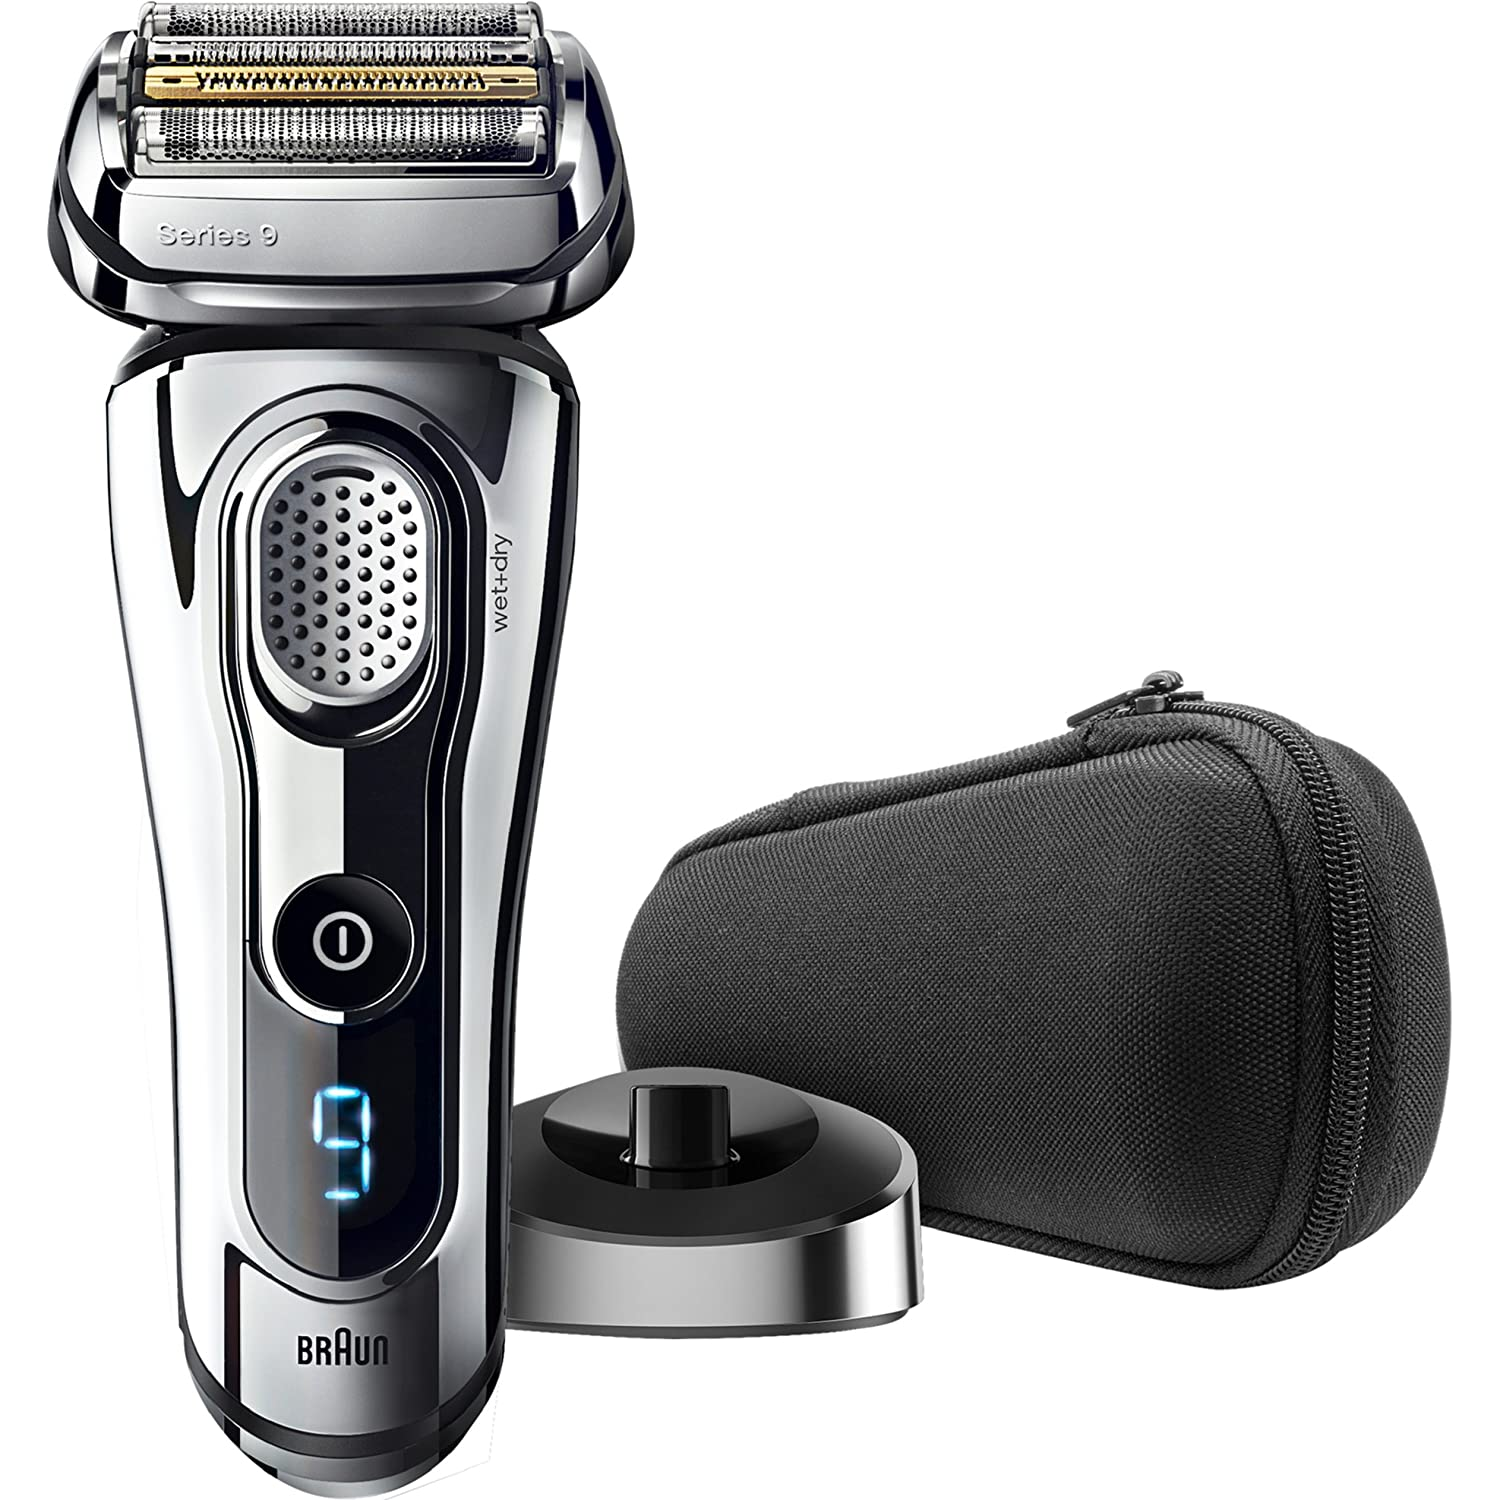 Braun series 9-9293s shaver 1 Count 10069055878481